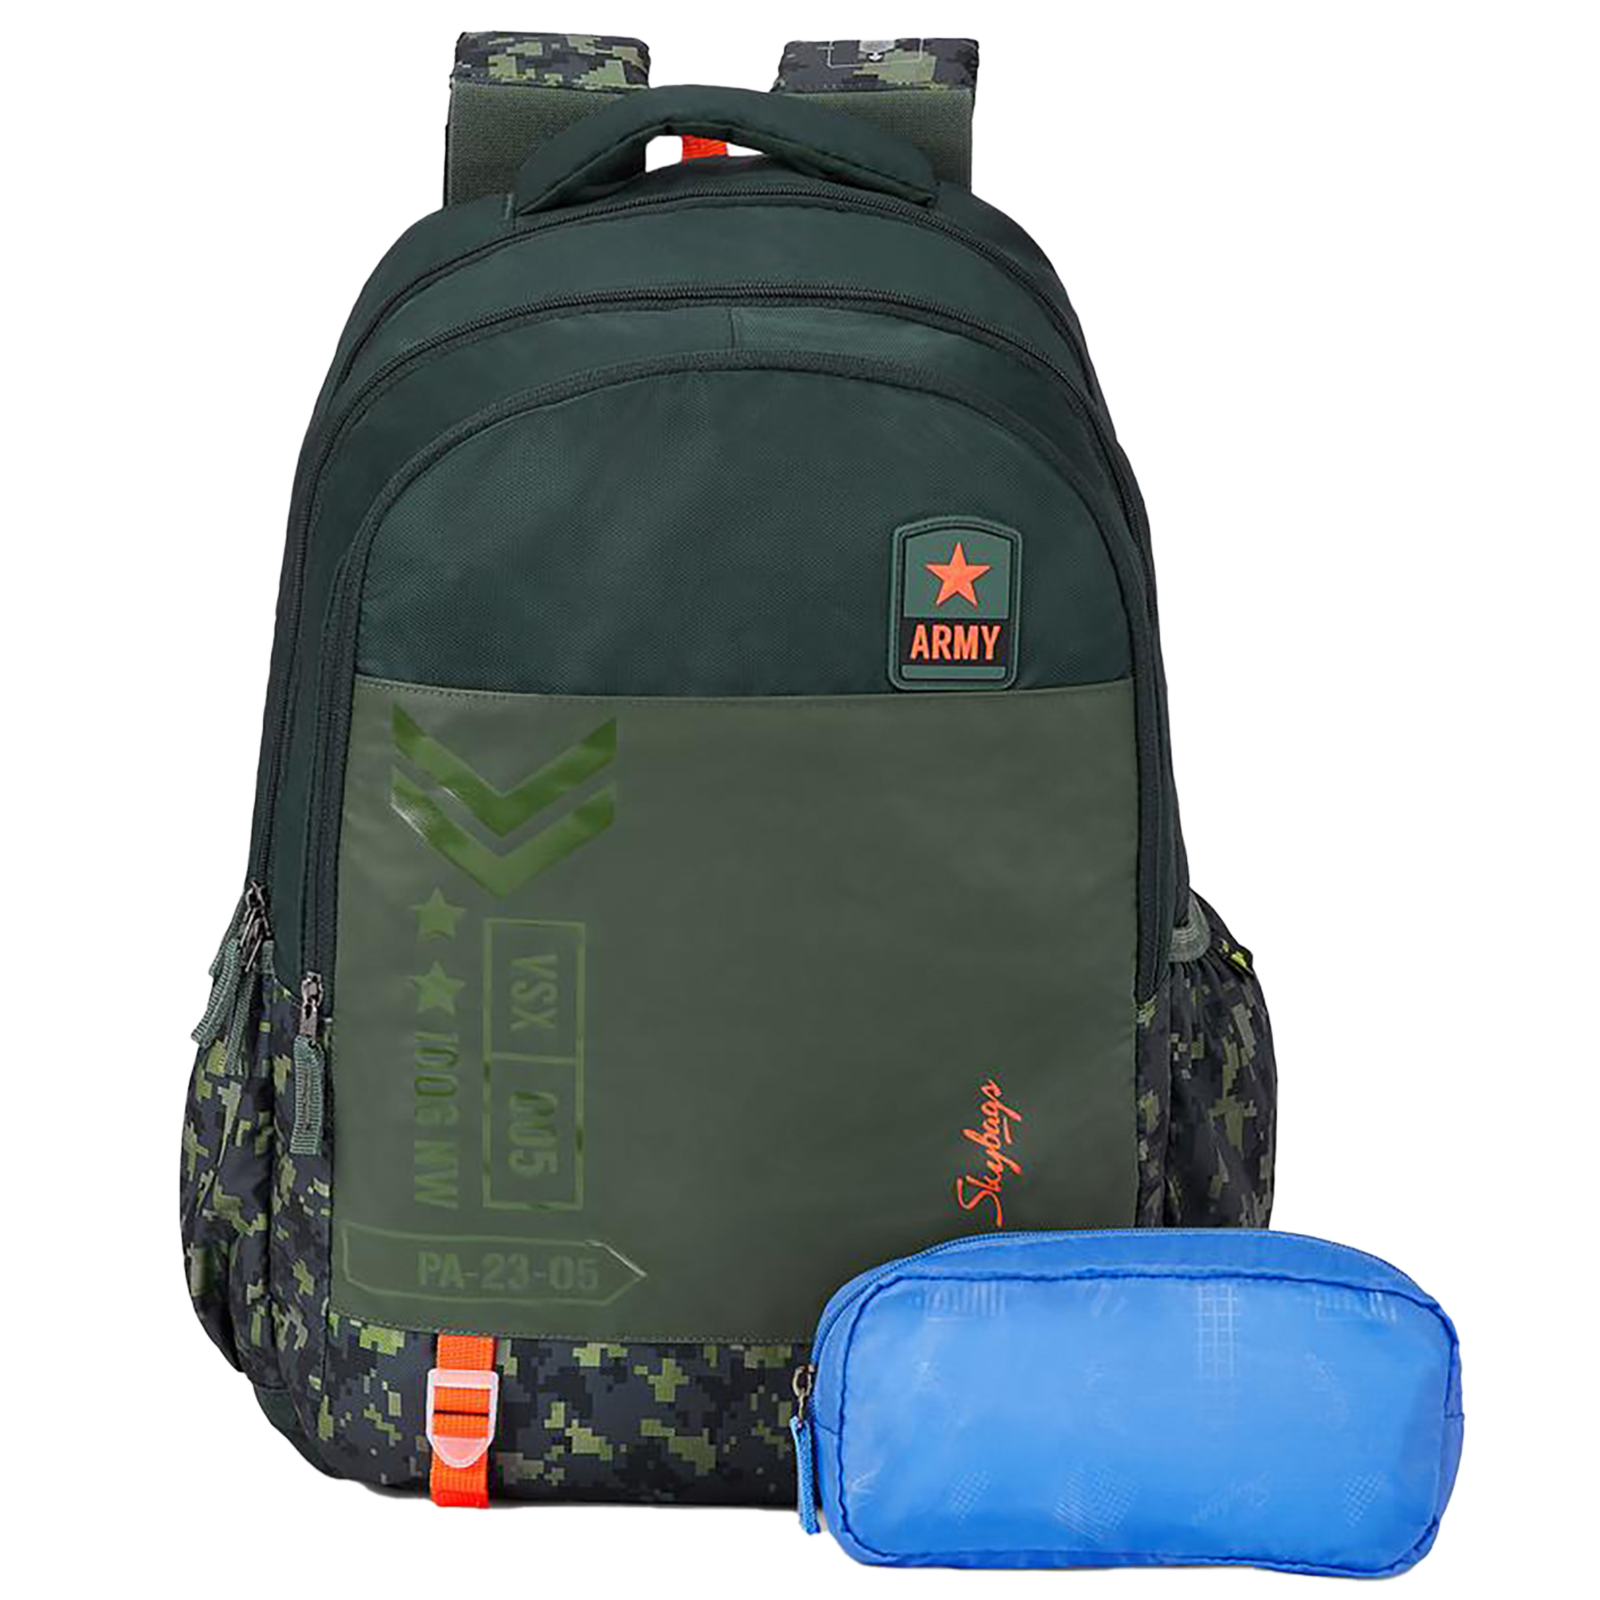 Sky Bags Astro Extra 02 36 Litres Mini Gucci Backpack (Rain Cover, BPASE2ROLV, Olive)_1